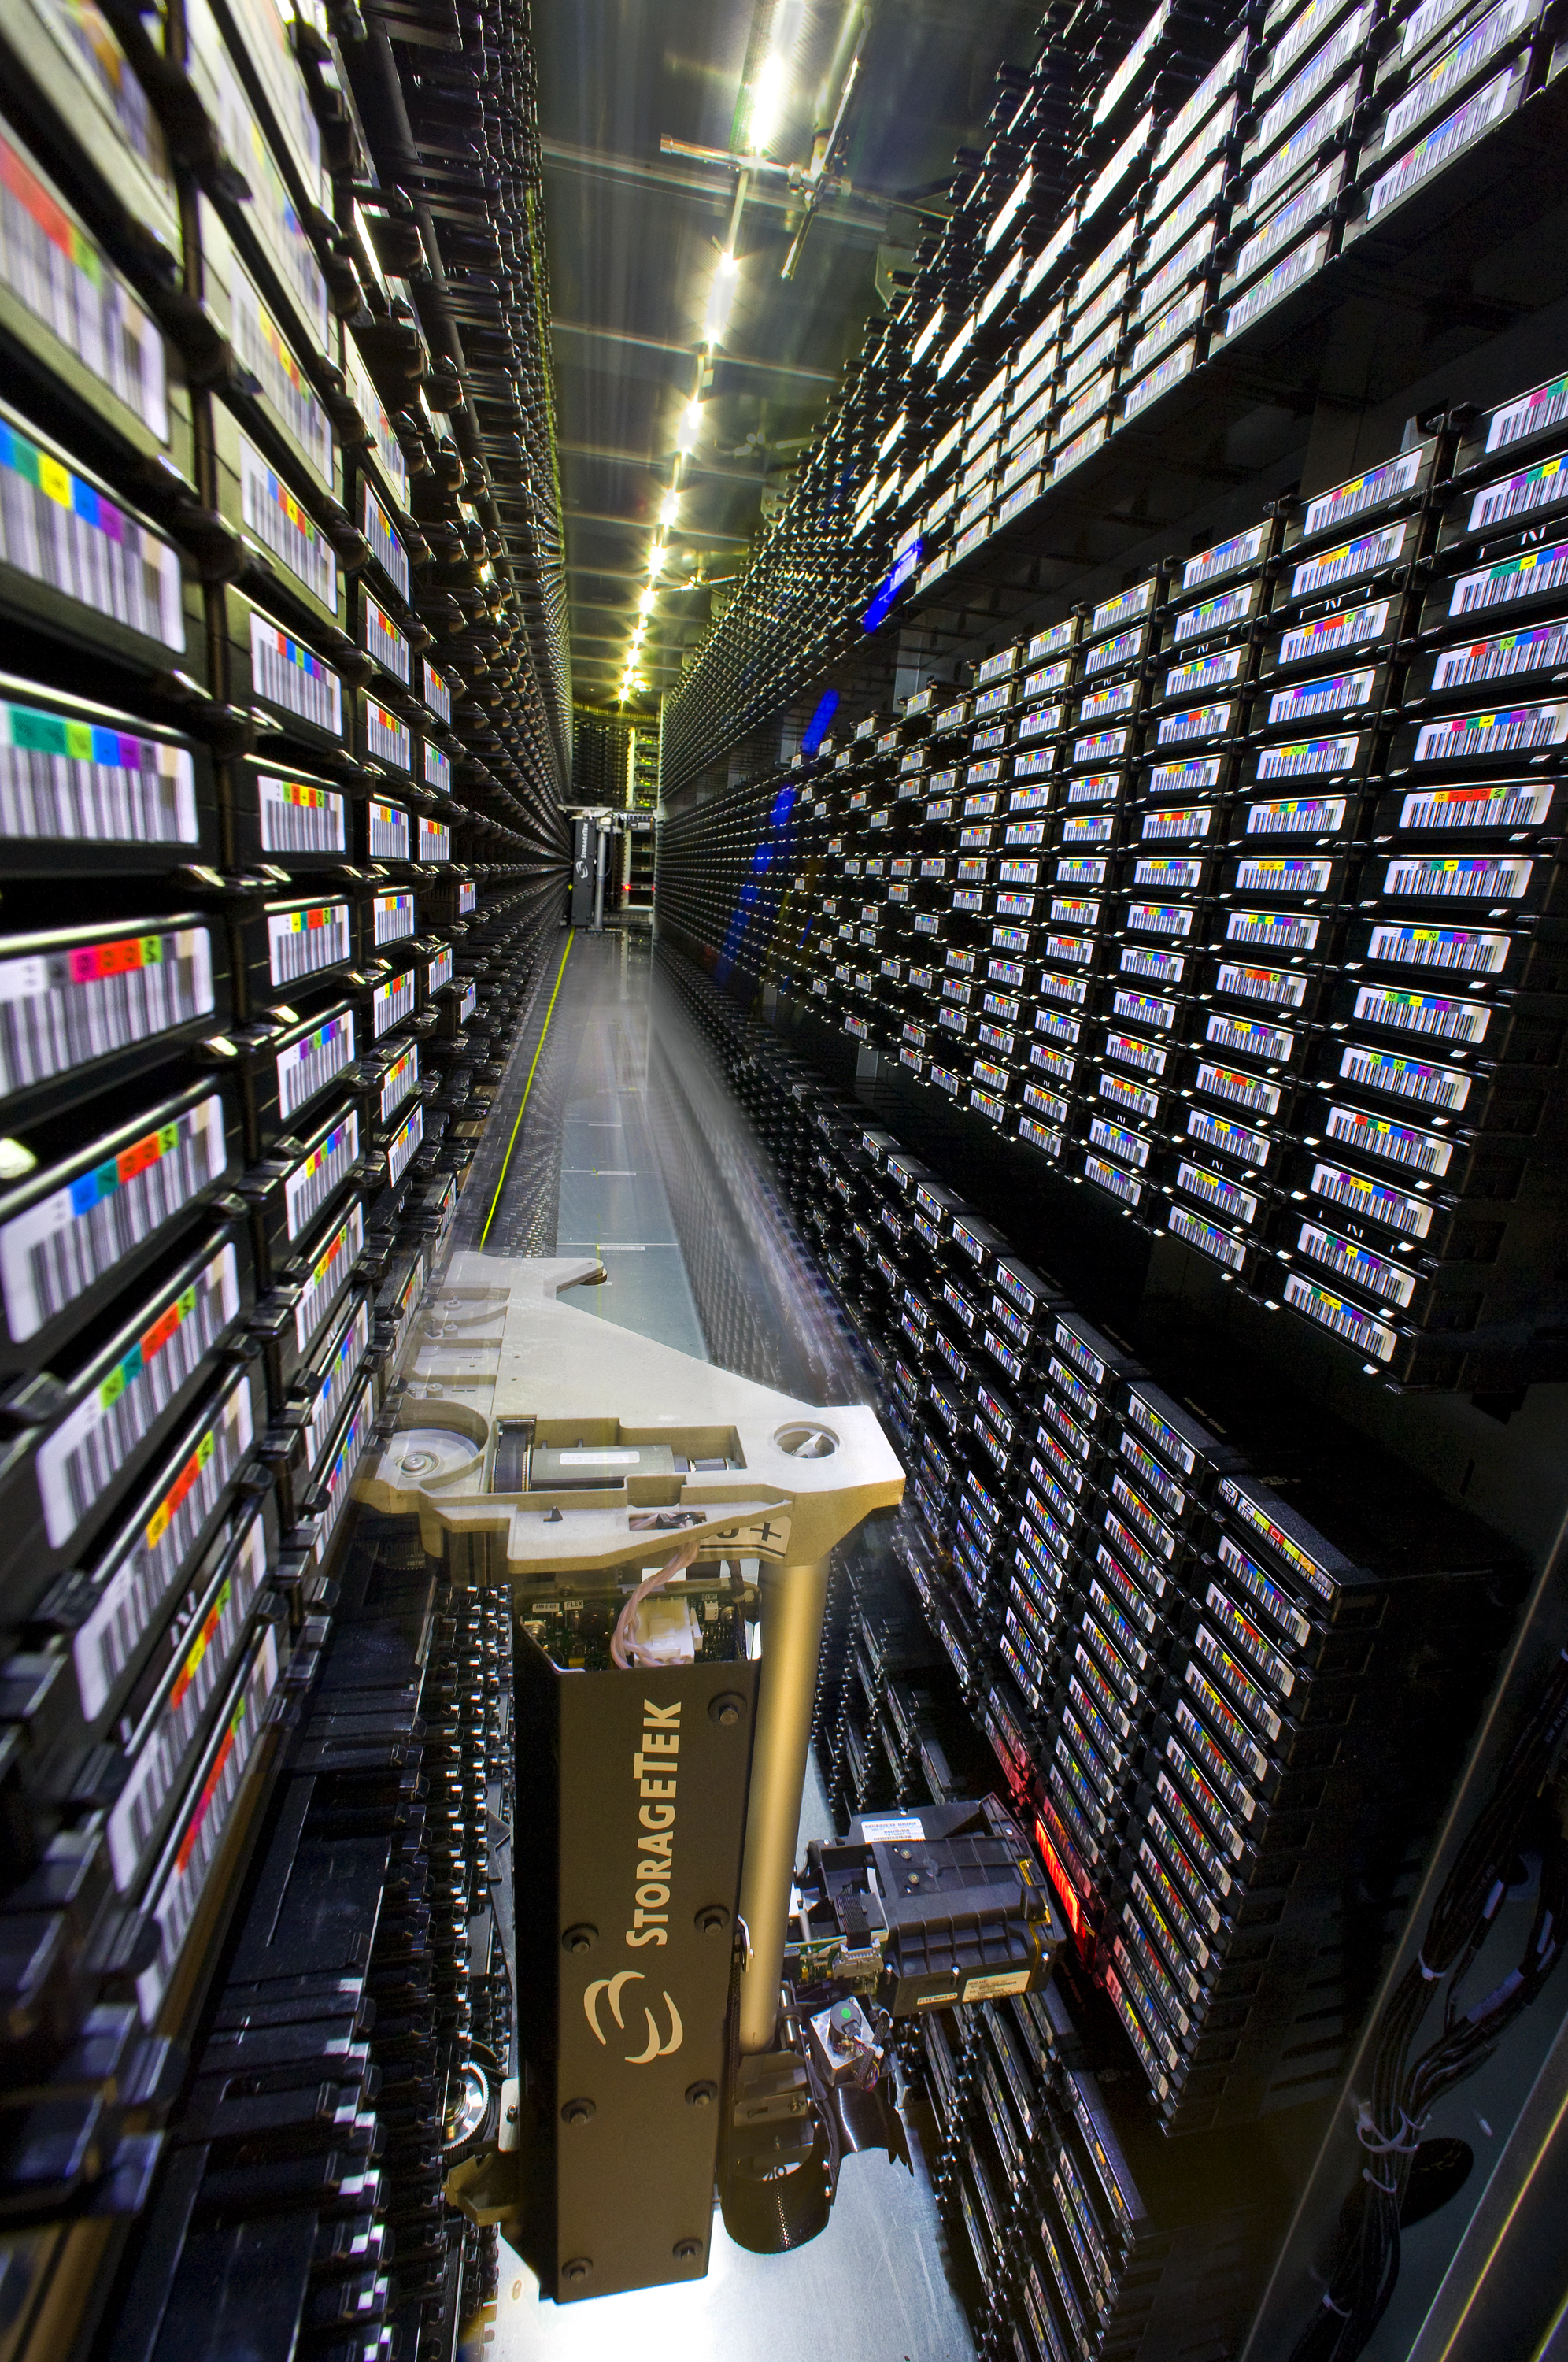 The High Performance Storage System at the US National Energy Research Scientific Computing Center can manage up to 37PB of scientific data.     Roy Kaltschmidt/Flickr   (CC BY-NC-ND 2.0)